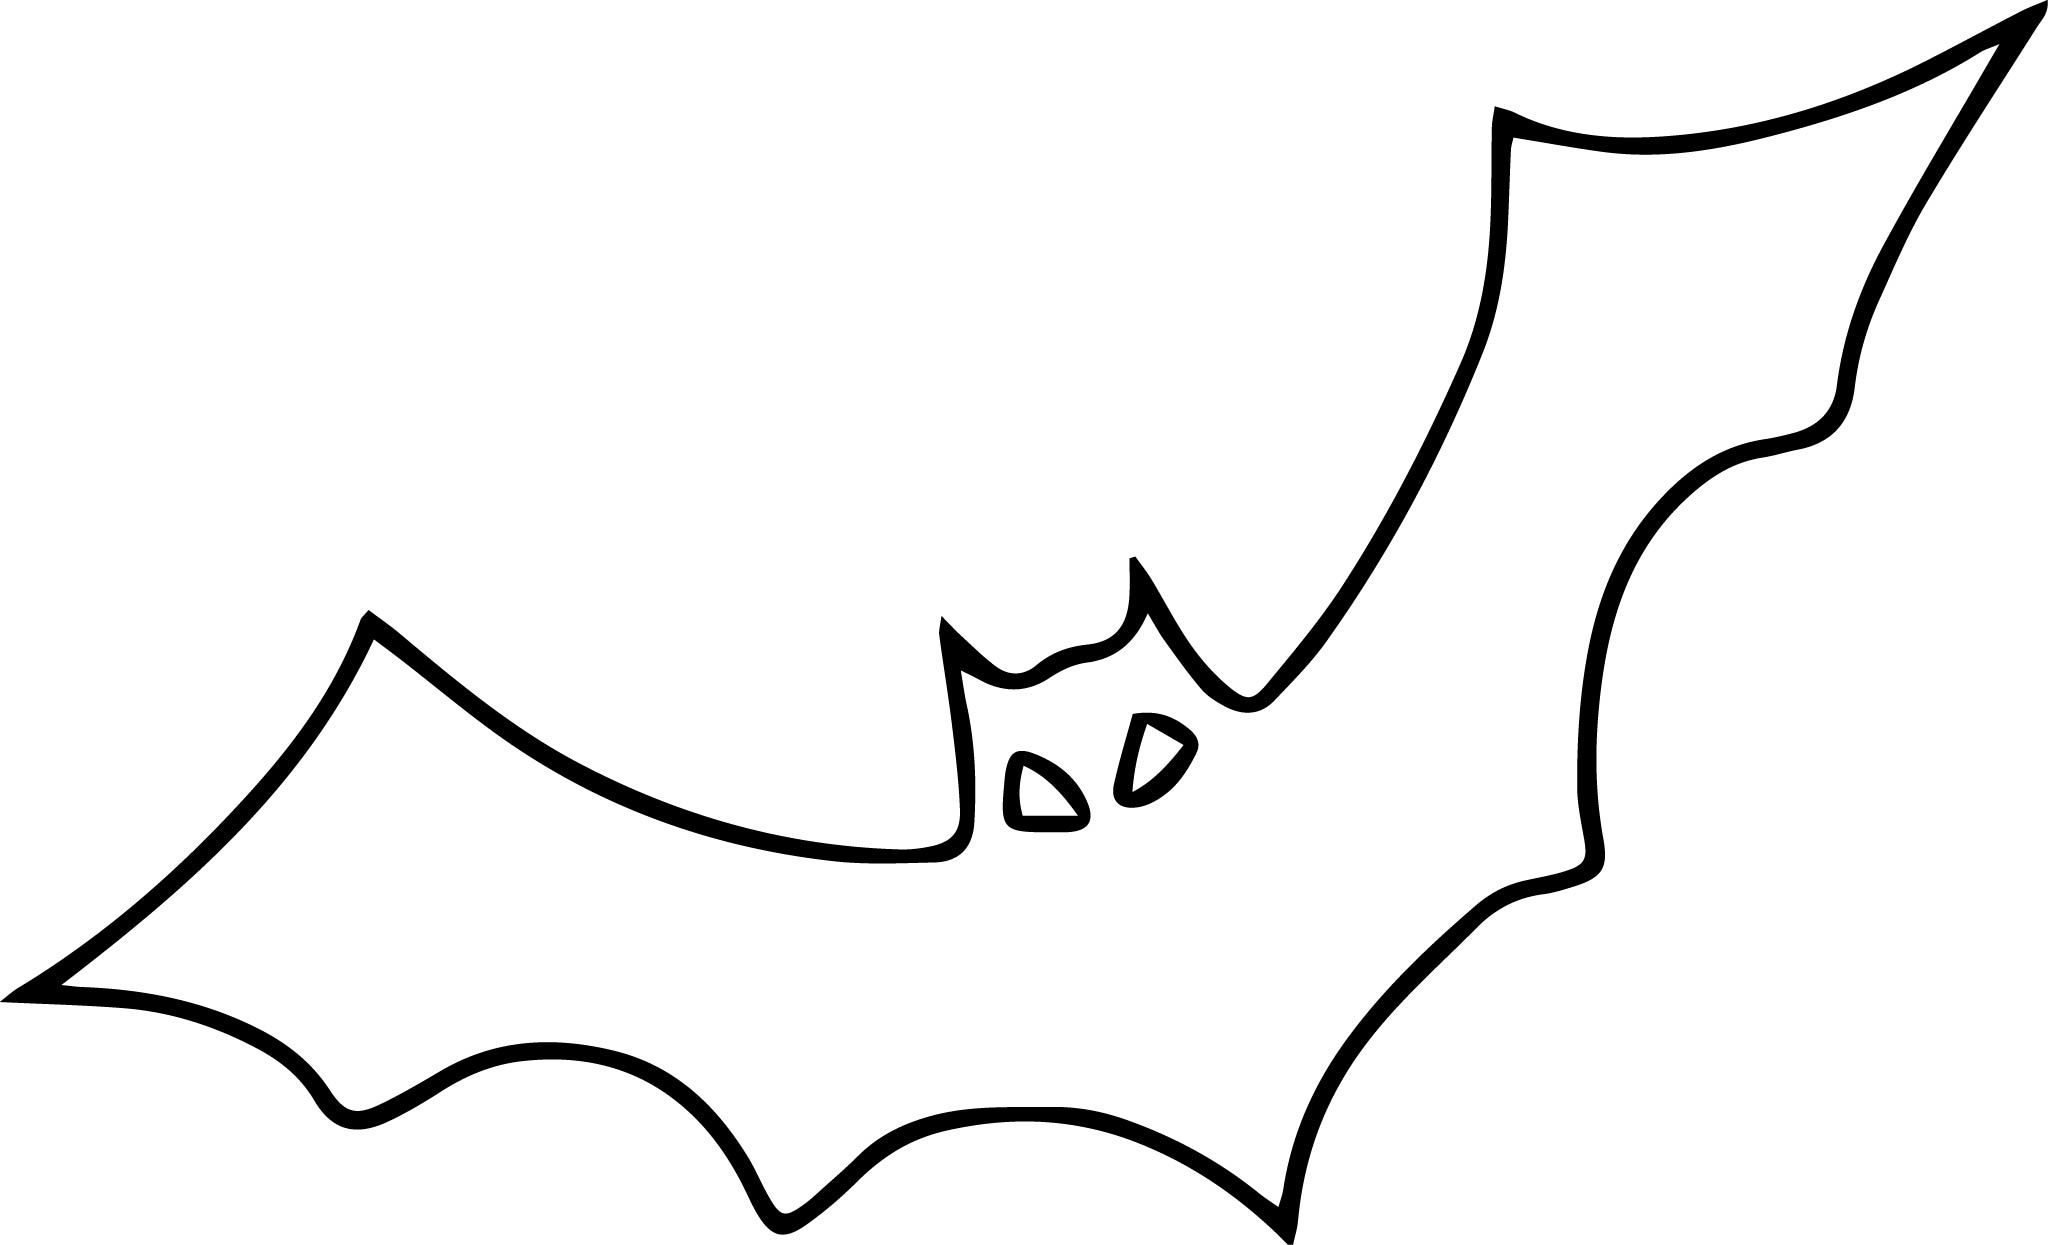 fruit bat coloring pages - photo#26